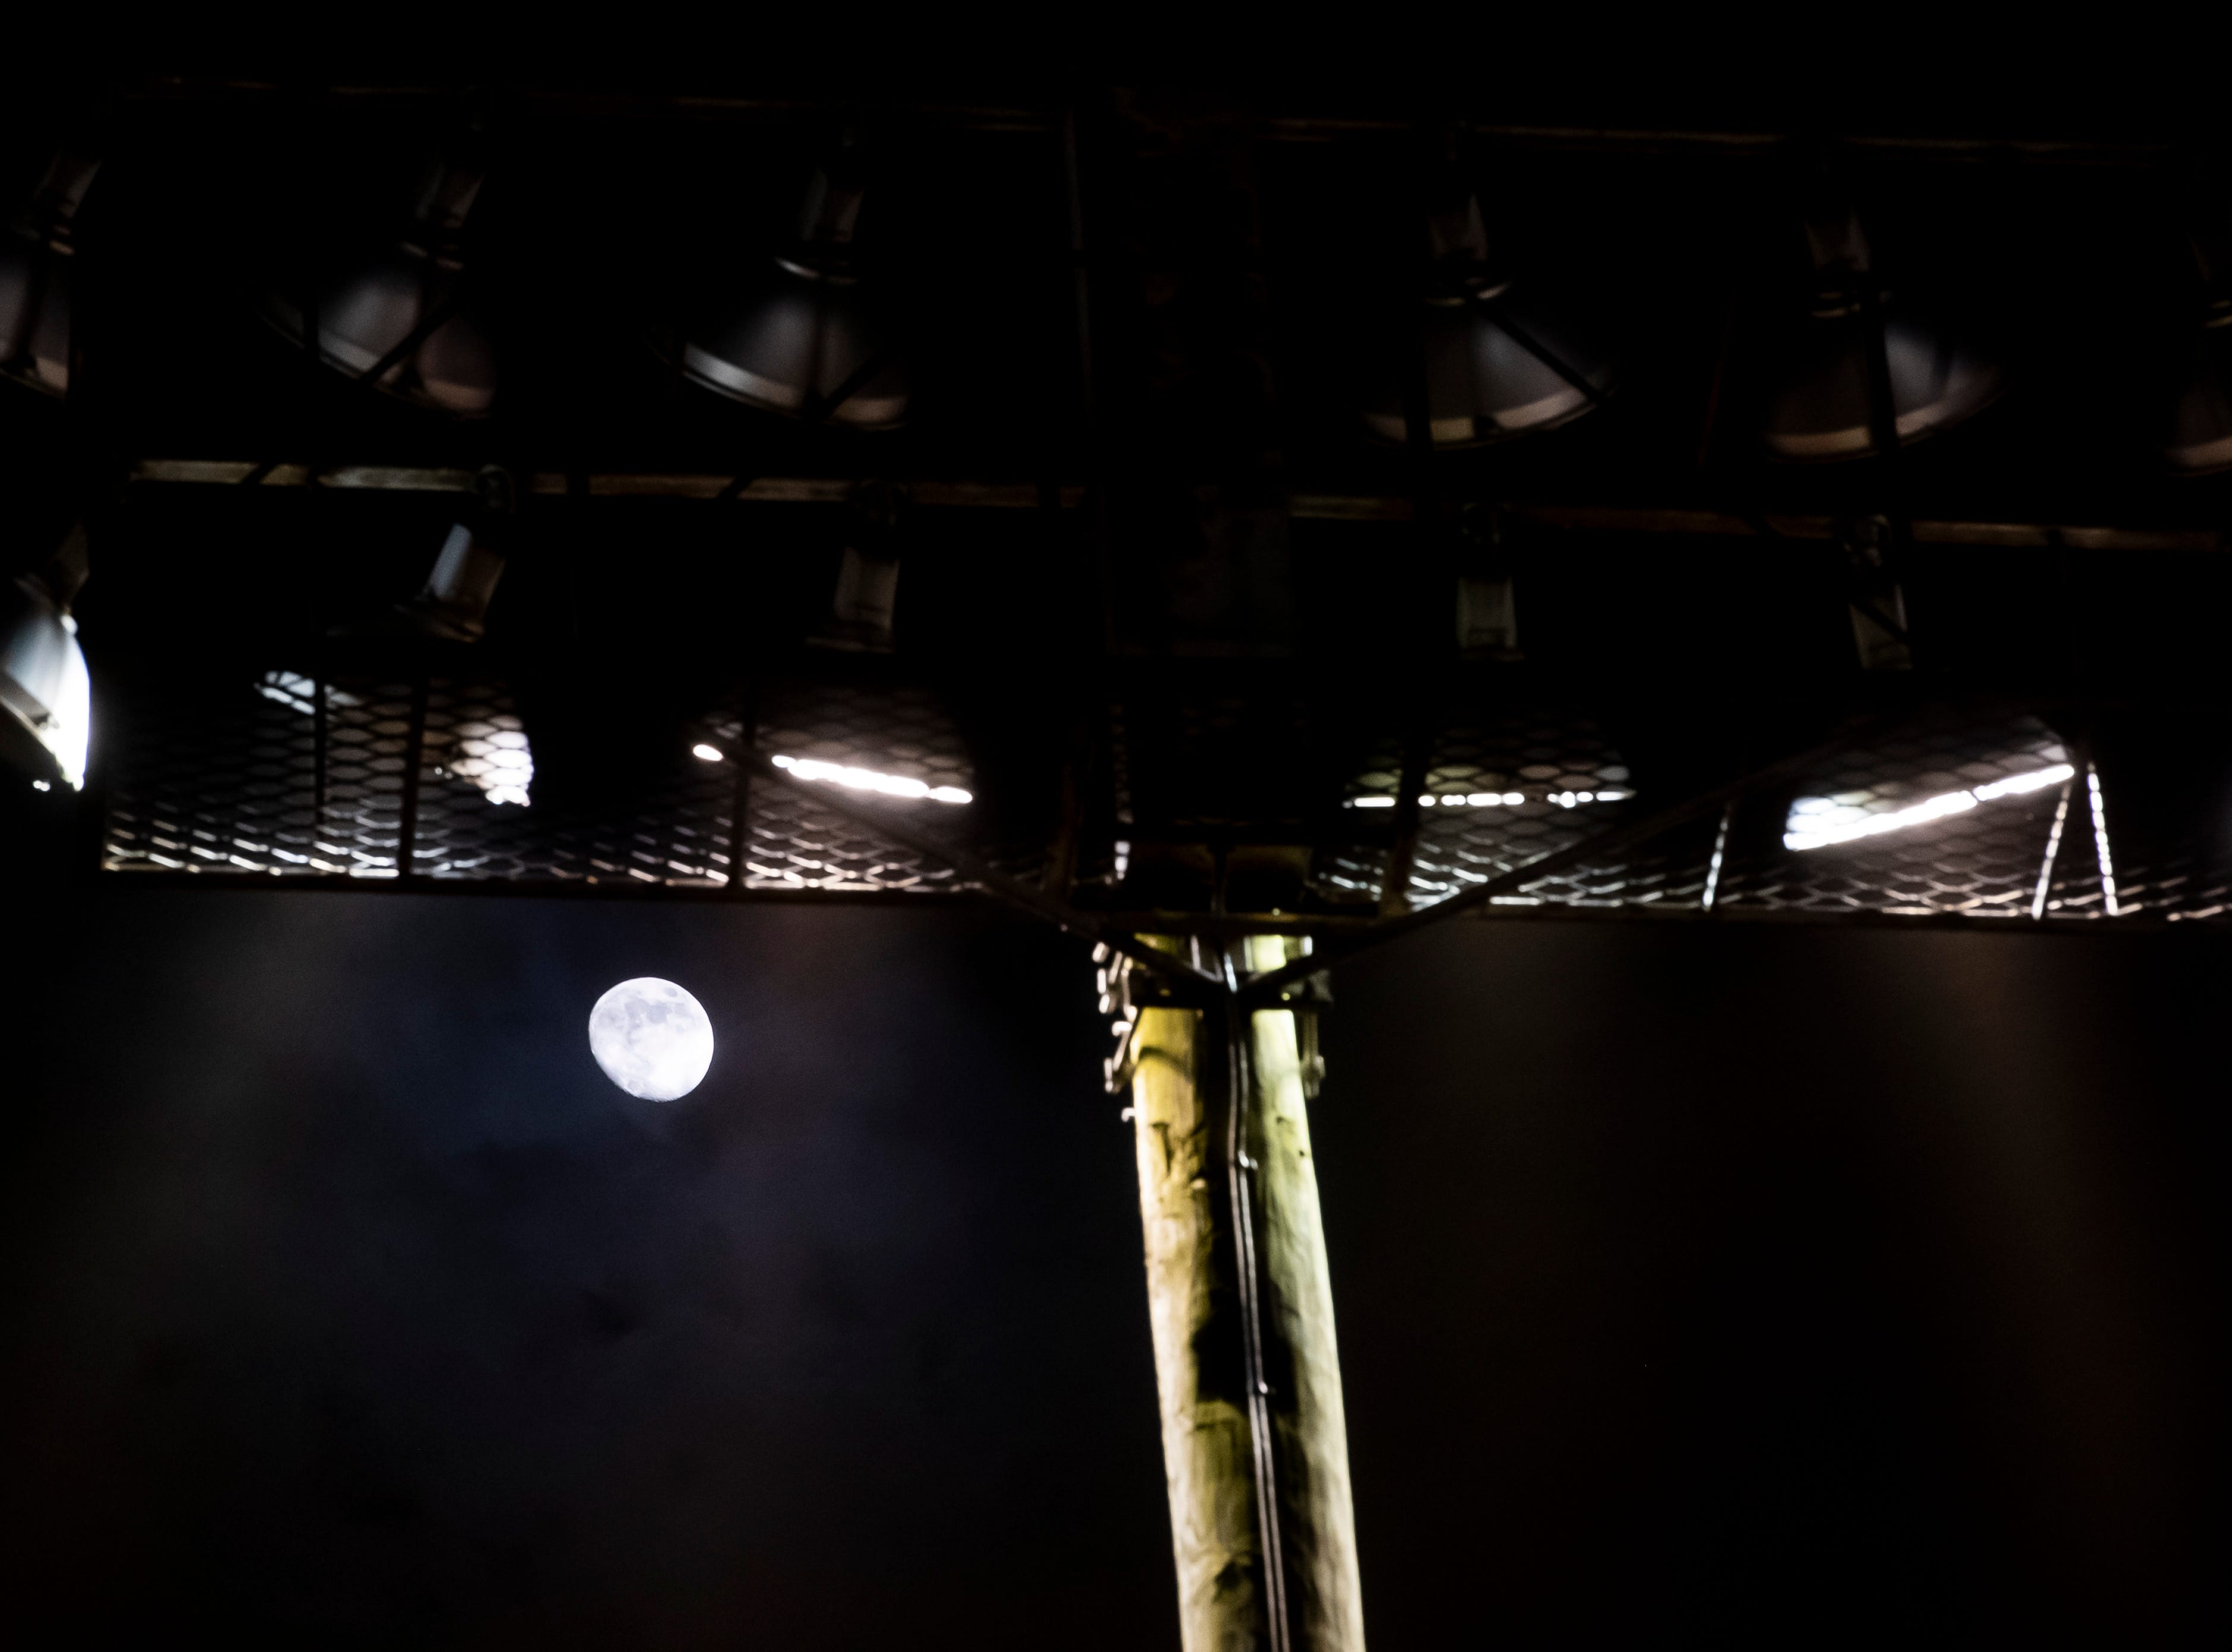 Clouds of dust pass in front of a light as the moon rises during the World of Outlaws Gettysburg Clash at Lincoln Speedway in Abbottstown on Wednesday, May 15, 2019.